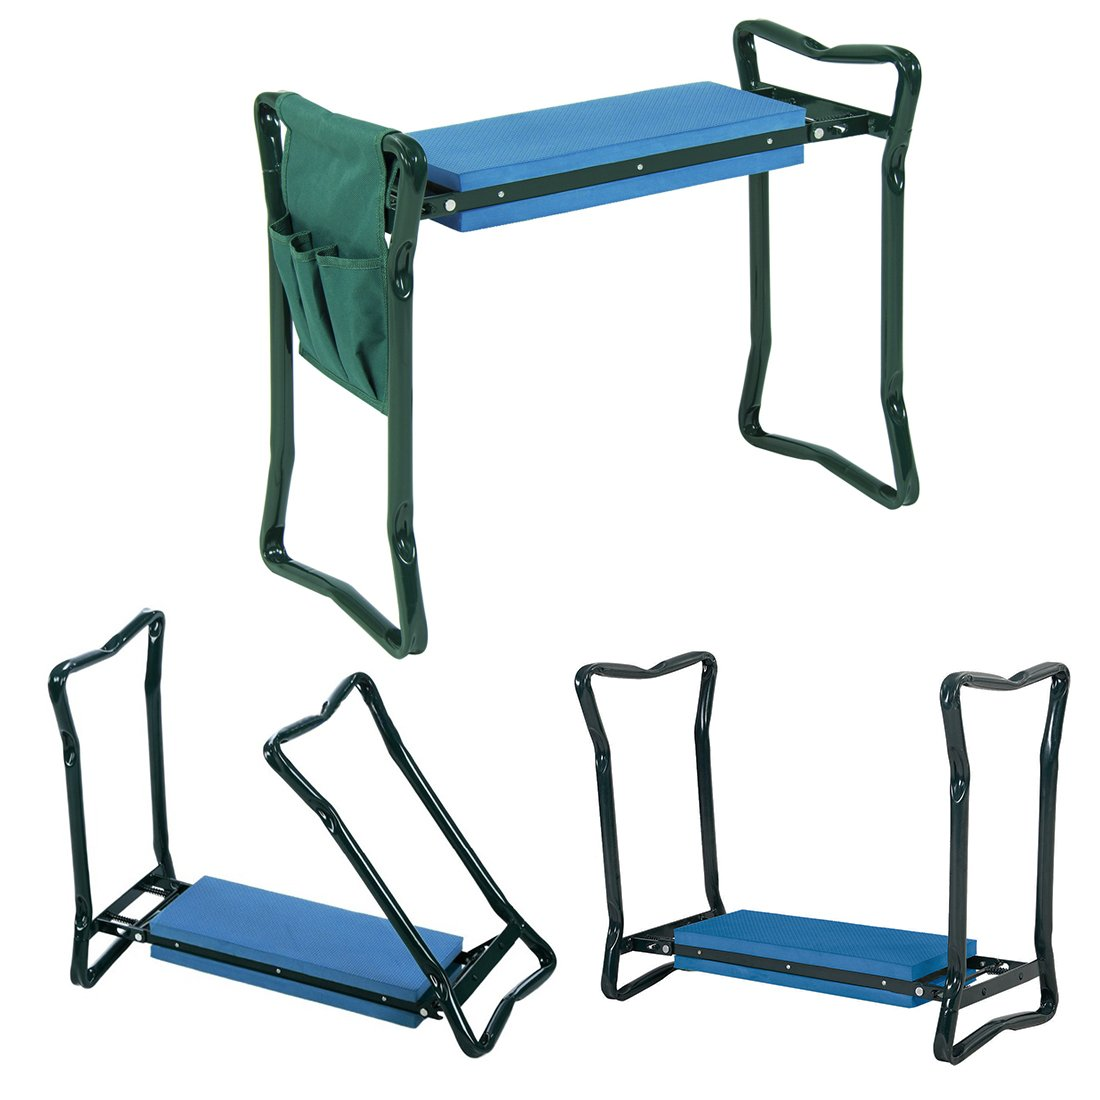 EBUNG Garden Kneeler and Seat Effective Knee Cushion That Transforms to Seat for Convenient Resting Flip up Side Down 2-in-1 Design Includes Tool Pouch Sturdy Build Gardeners Foldable Kneeler